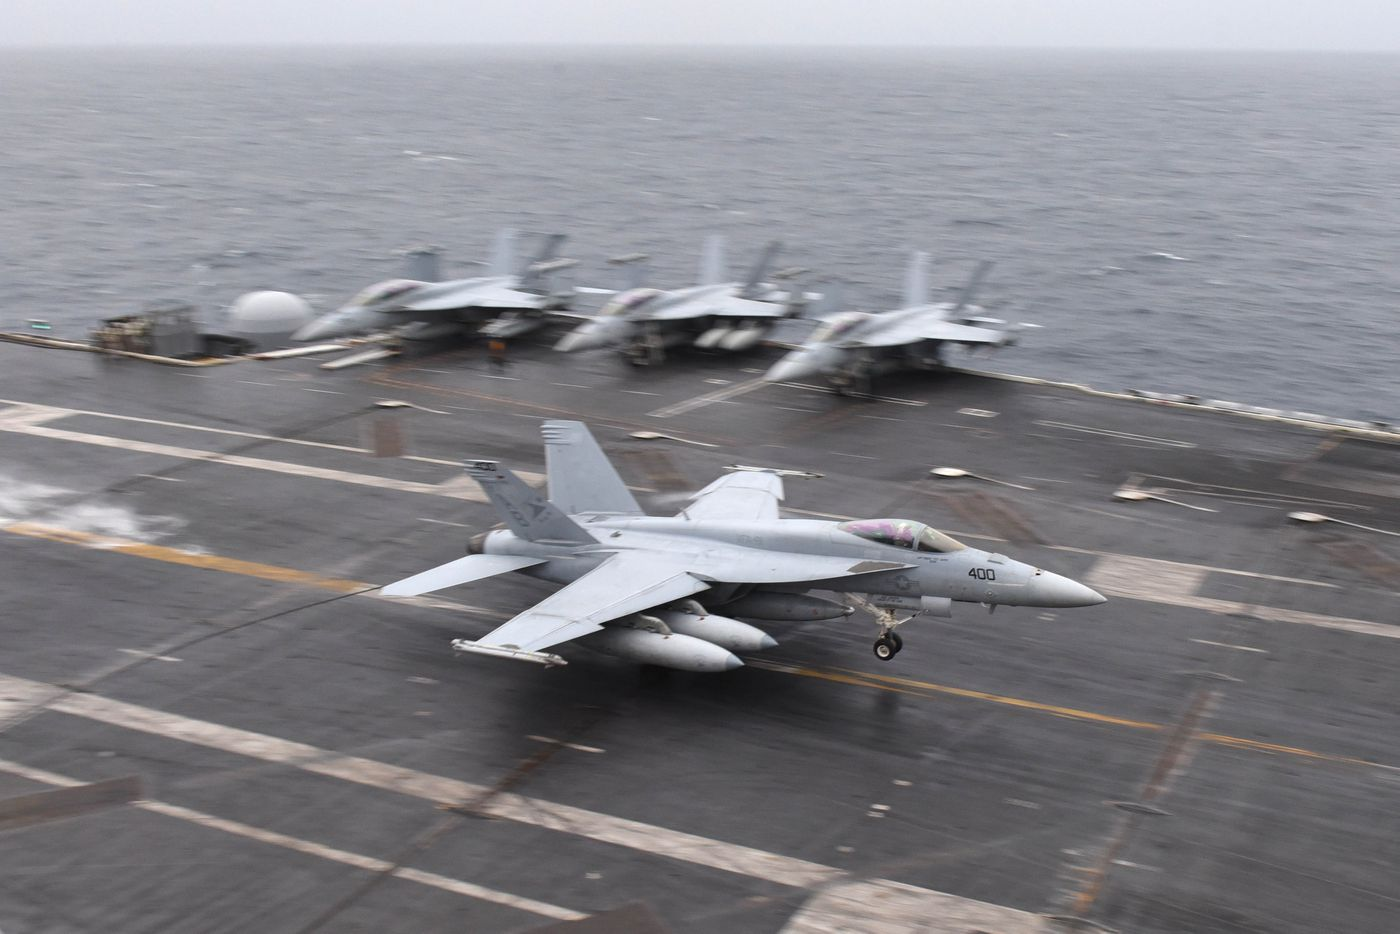 An F/A-18E Super Hornet assigned to the Sunliners of Strike Fighter Squadron 81 lands on the flight deck aboard the Nimitz-class aircraft carrier USS Harry S. Truman. For the first time in nearly 30 years, a U.S. aircraft carrier has entered the Arctic Circle. (U.S. Navy photo by Mass Communication Specialist Seaman Maxwell Higgins)